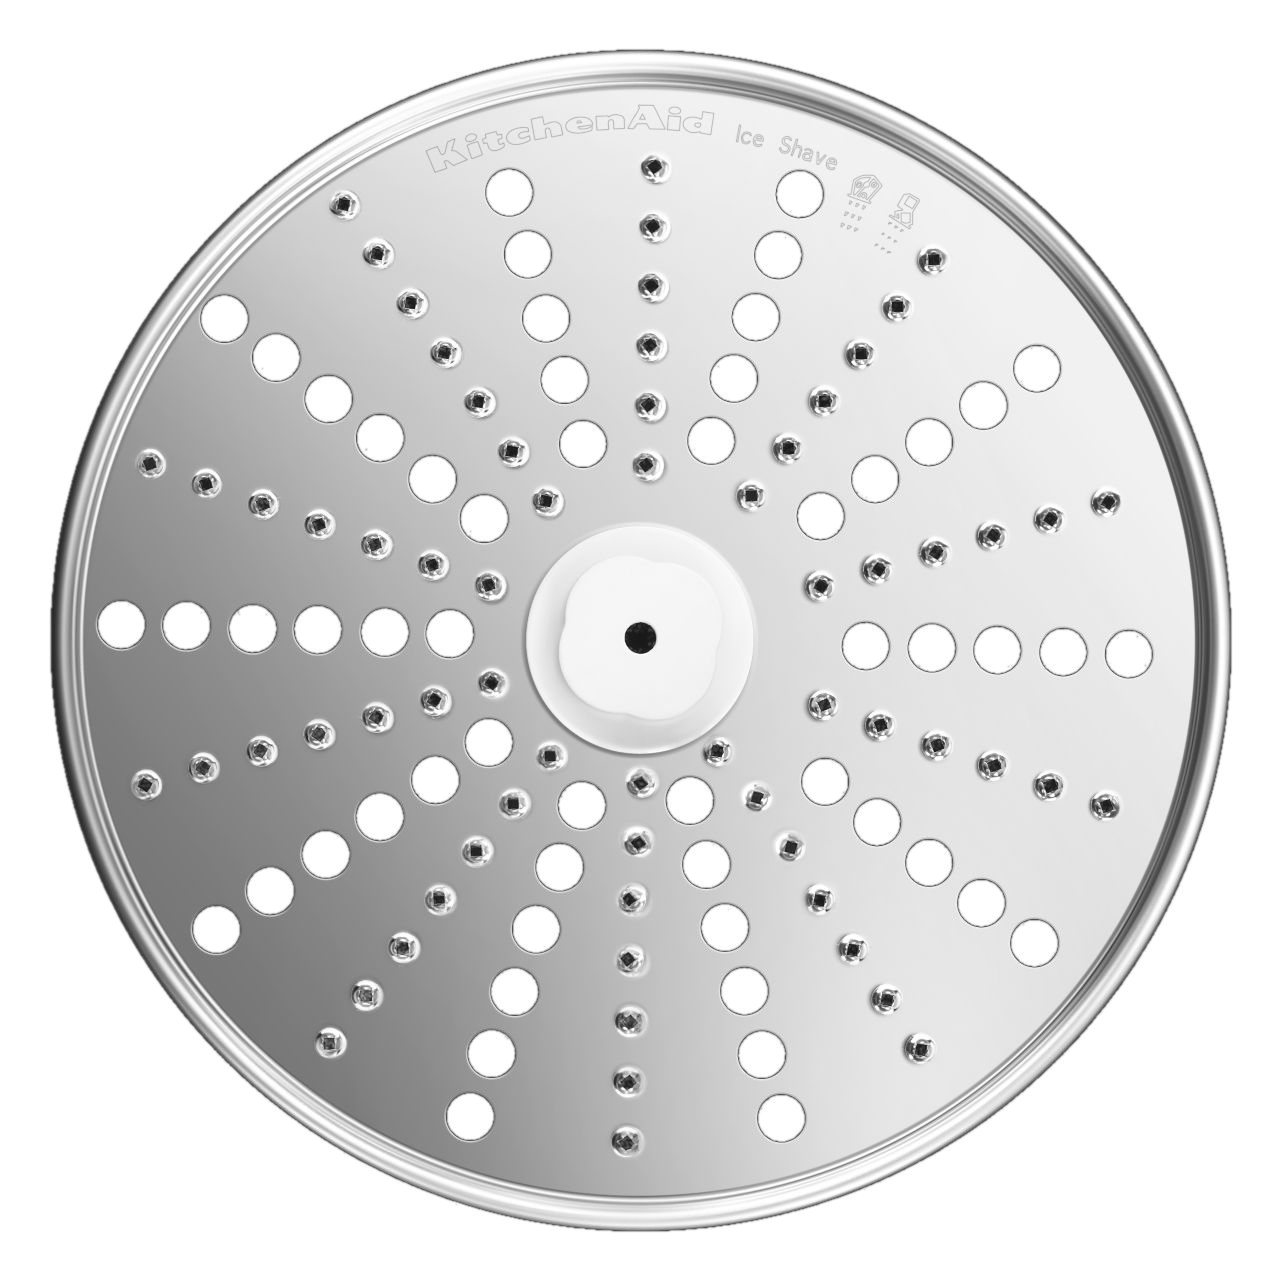 KitchenAid Parmesan and Ice Disc for 13 Cup Food Processor